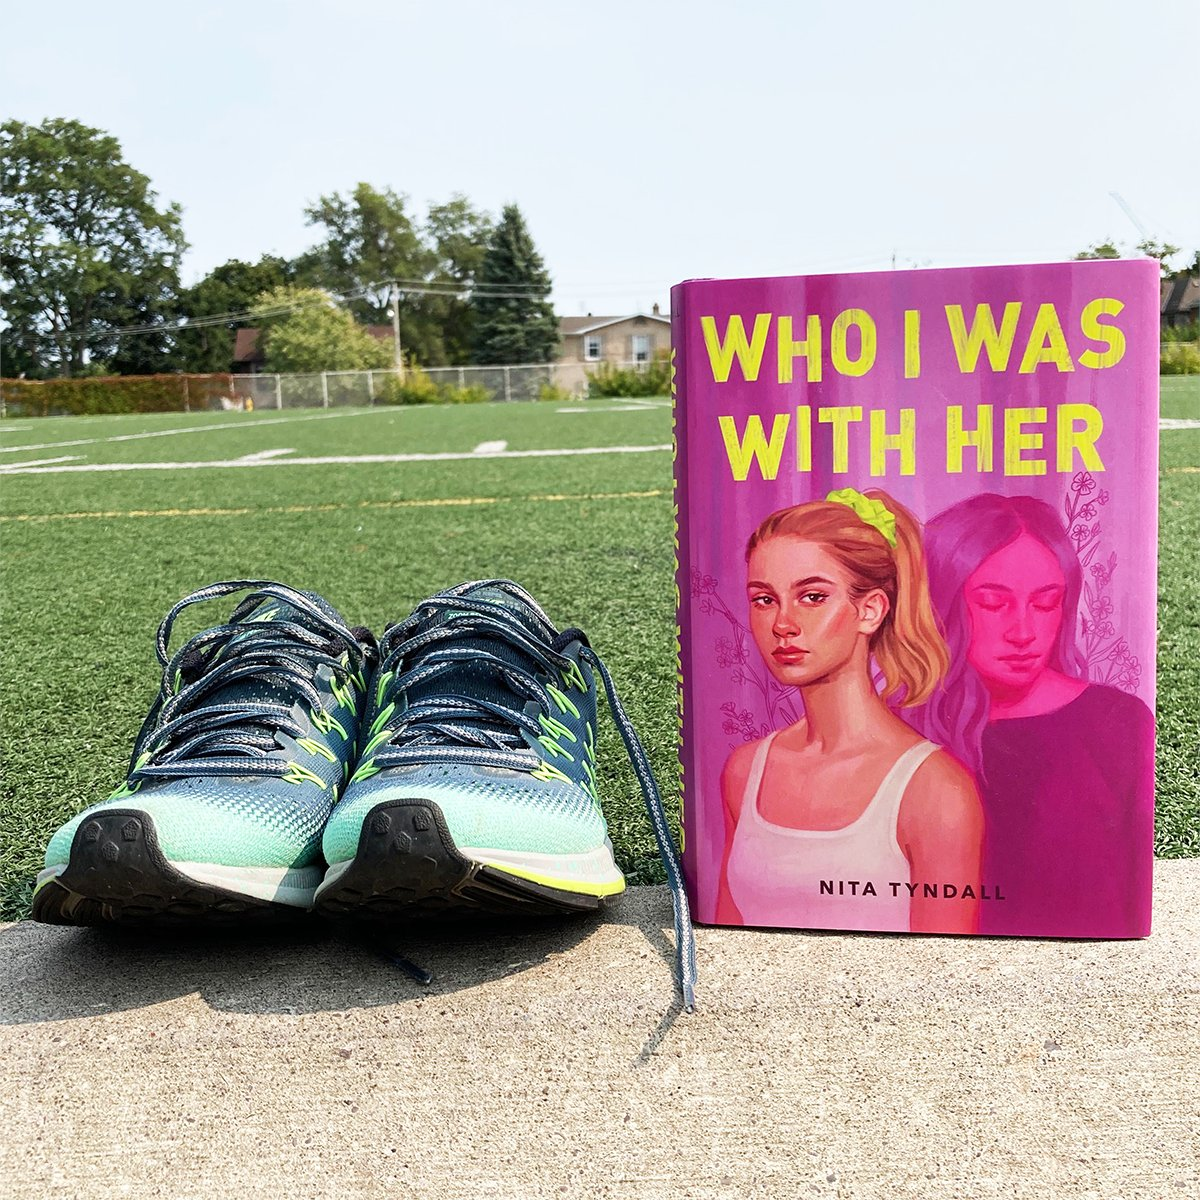 There are two things that Corinne knows to be true: that shes is in love with Maggie, and that she isn't ready to come out as bi. But then Maggie dies... #WhoIWasWithHer @NitaTyndall bit.ly/3khIncD